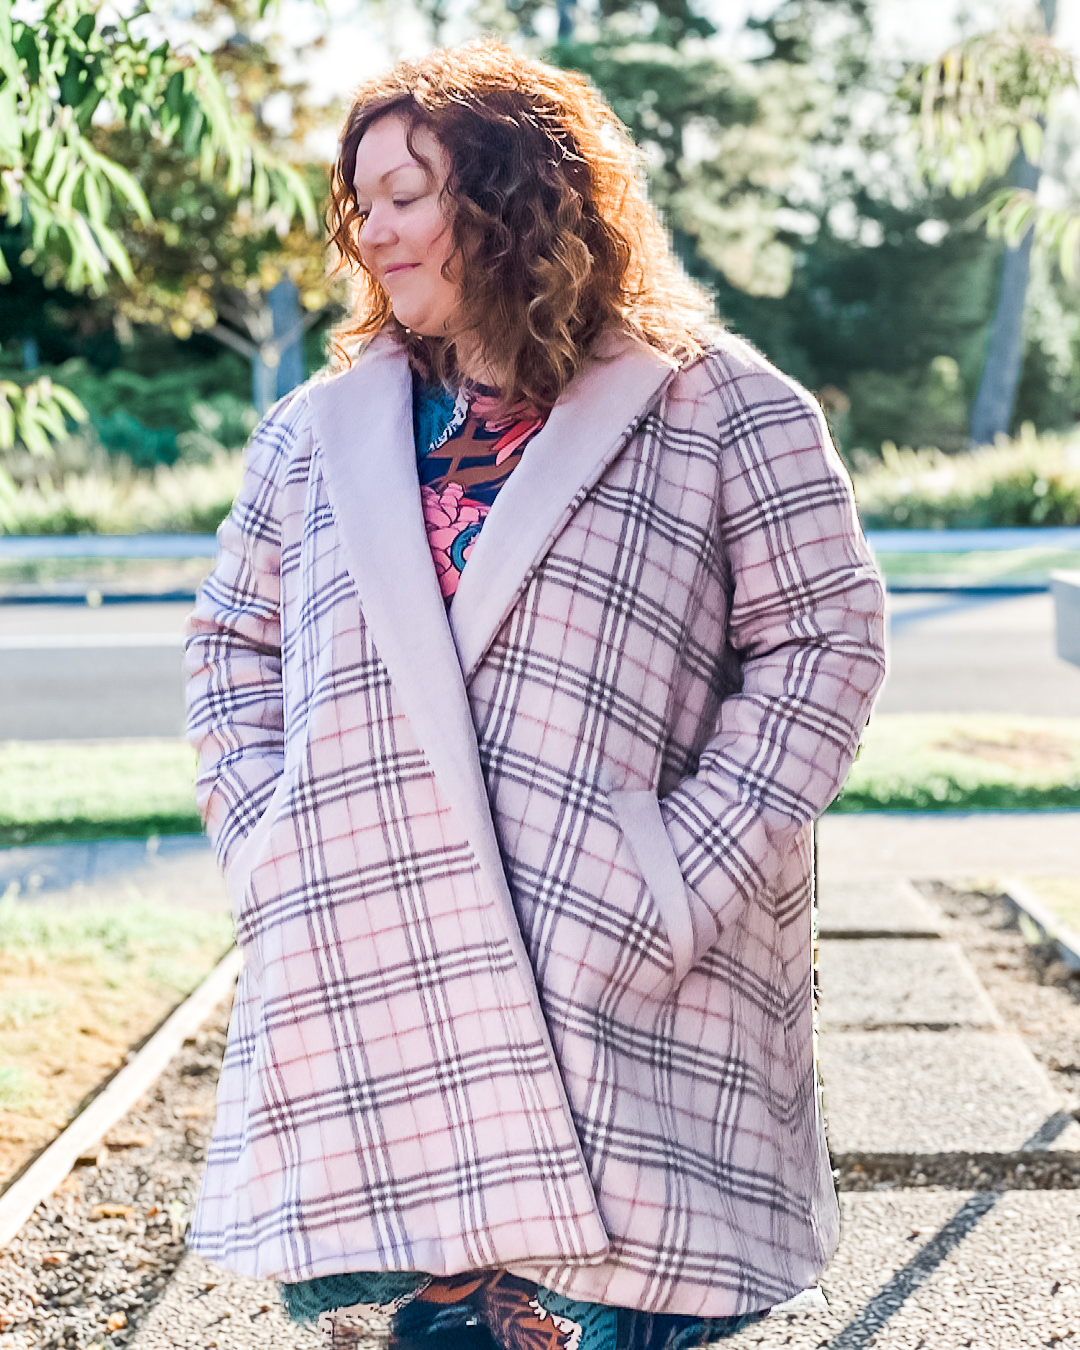 Image of @ Oh sew fearless wearing the new Opium coat